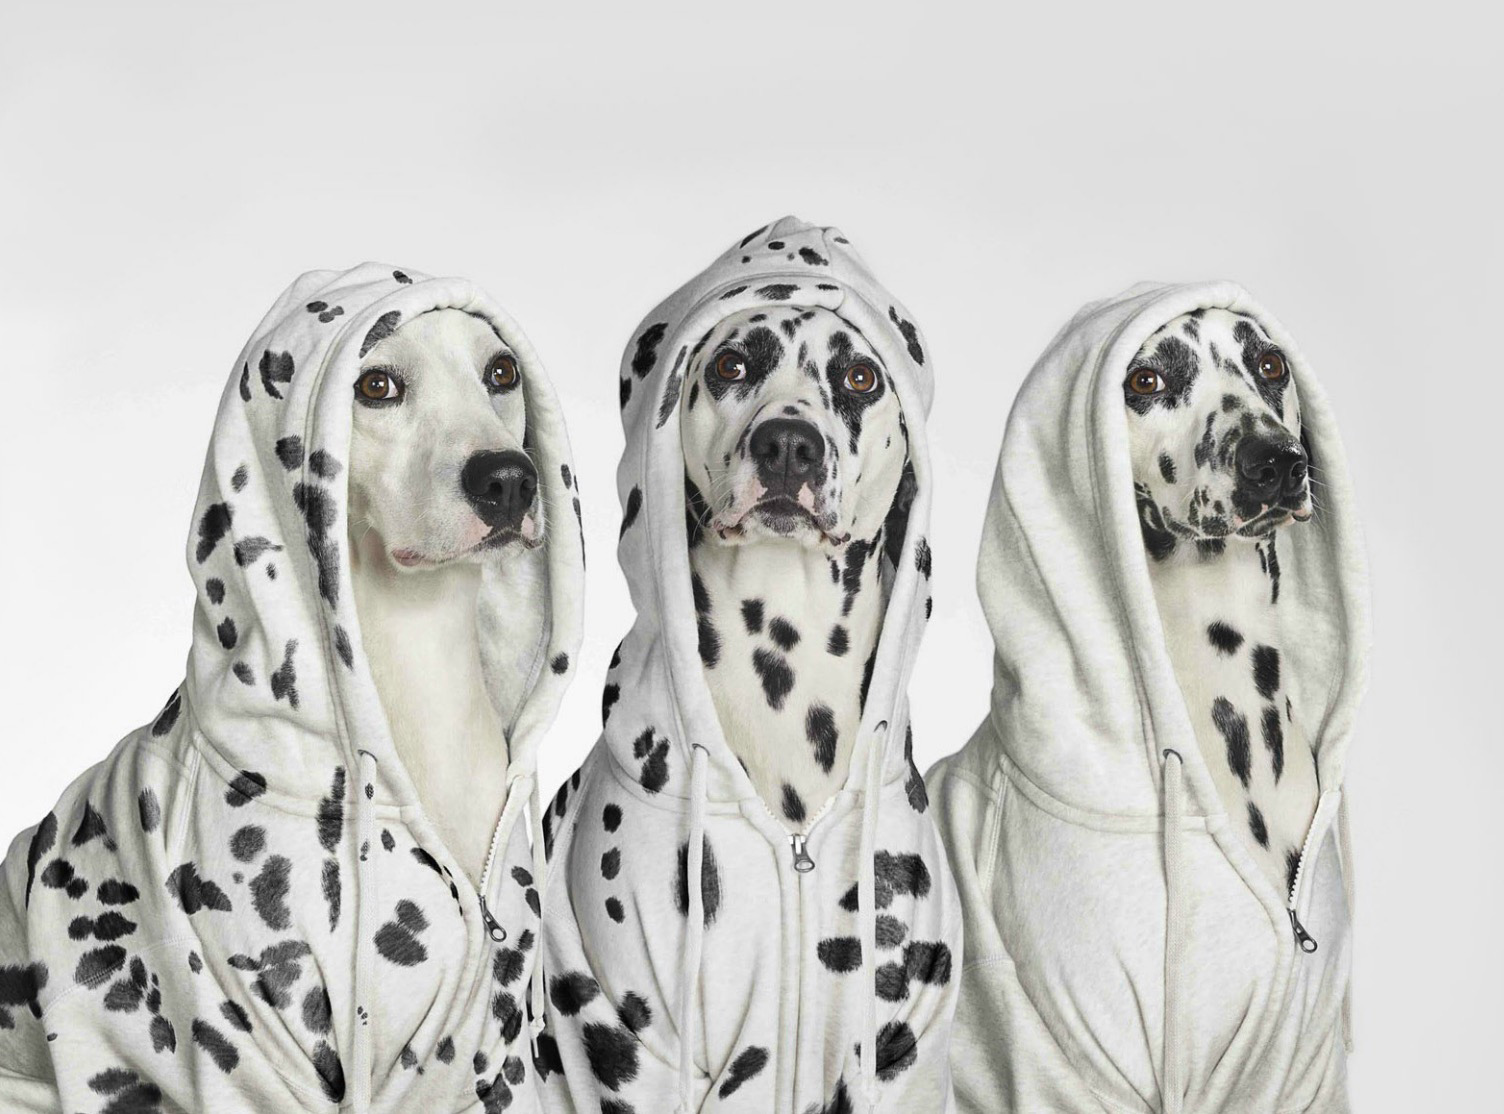 Dalmatians wearing hoodies